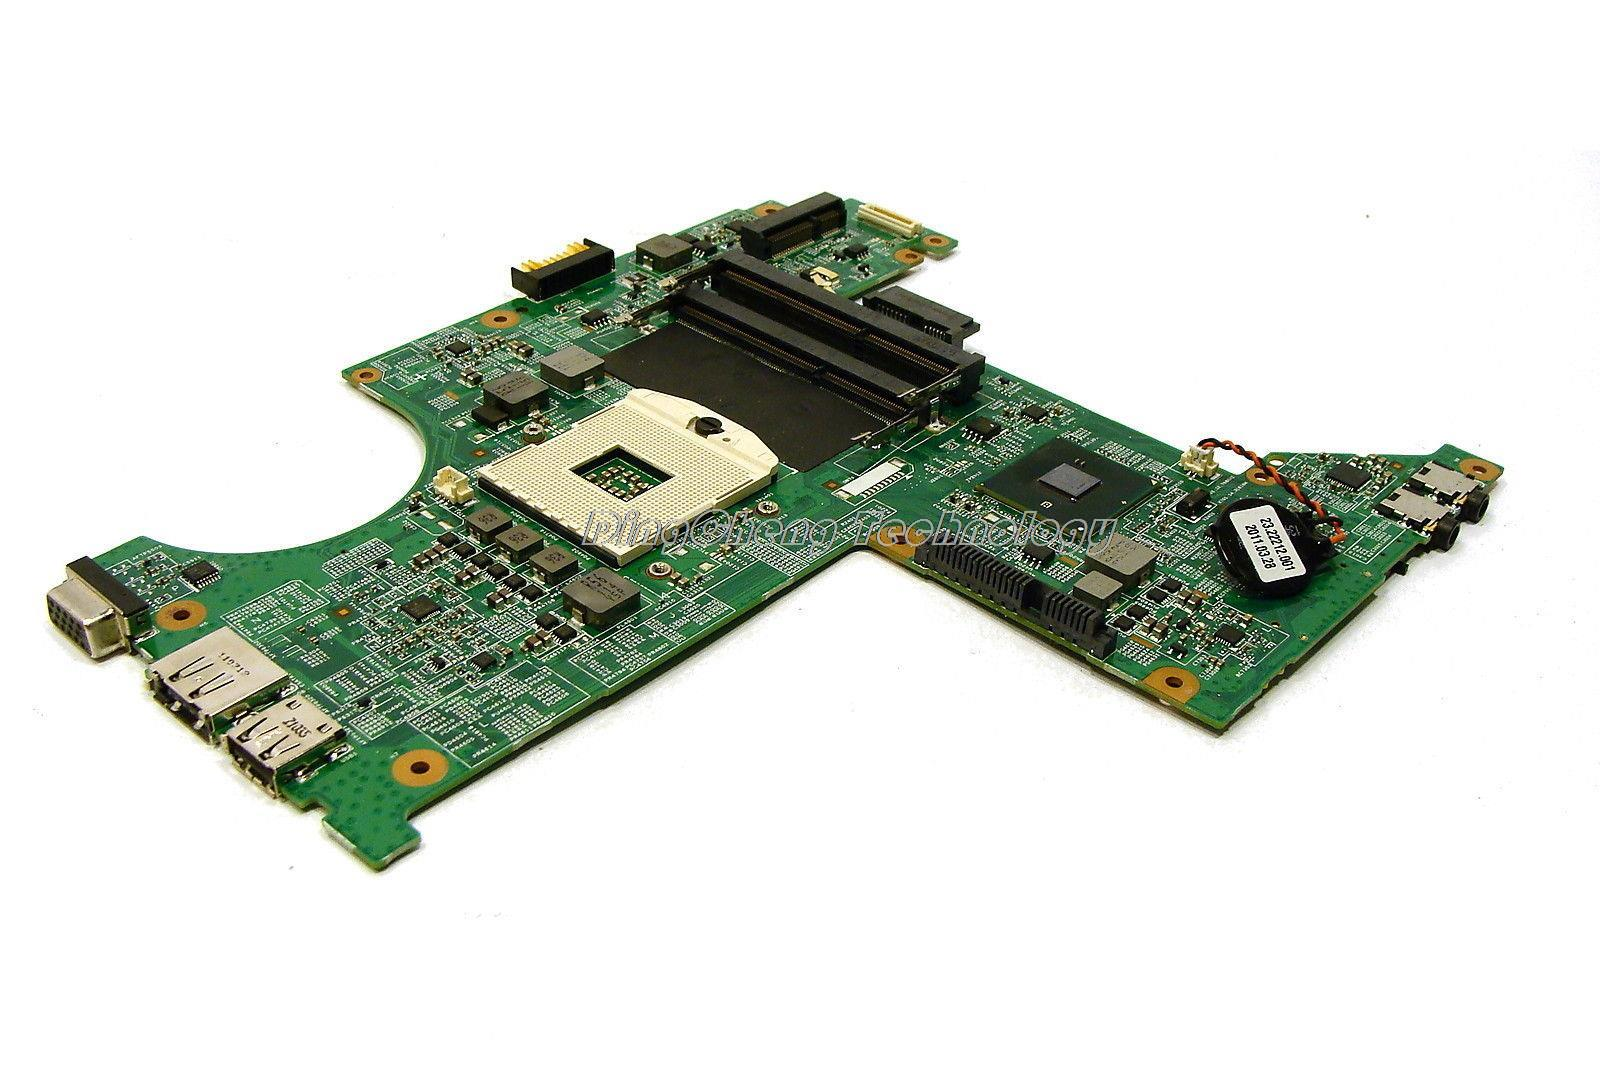 SHELI laptop Motherboard/mainboard for dell 3300 V3300 0FN8W3 CN-0FN8W3 48.4EX02.011 for intel cpu with integrated graphics card sheli laptop motherboard mainboard for dell e5410 0d1vn4 cn 0d1vn4 for intel cpu with integrated graphics card 100